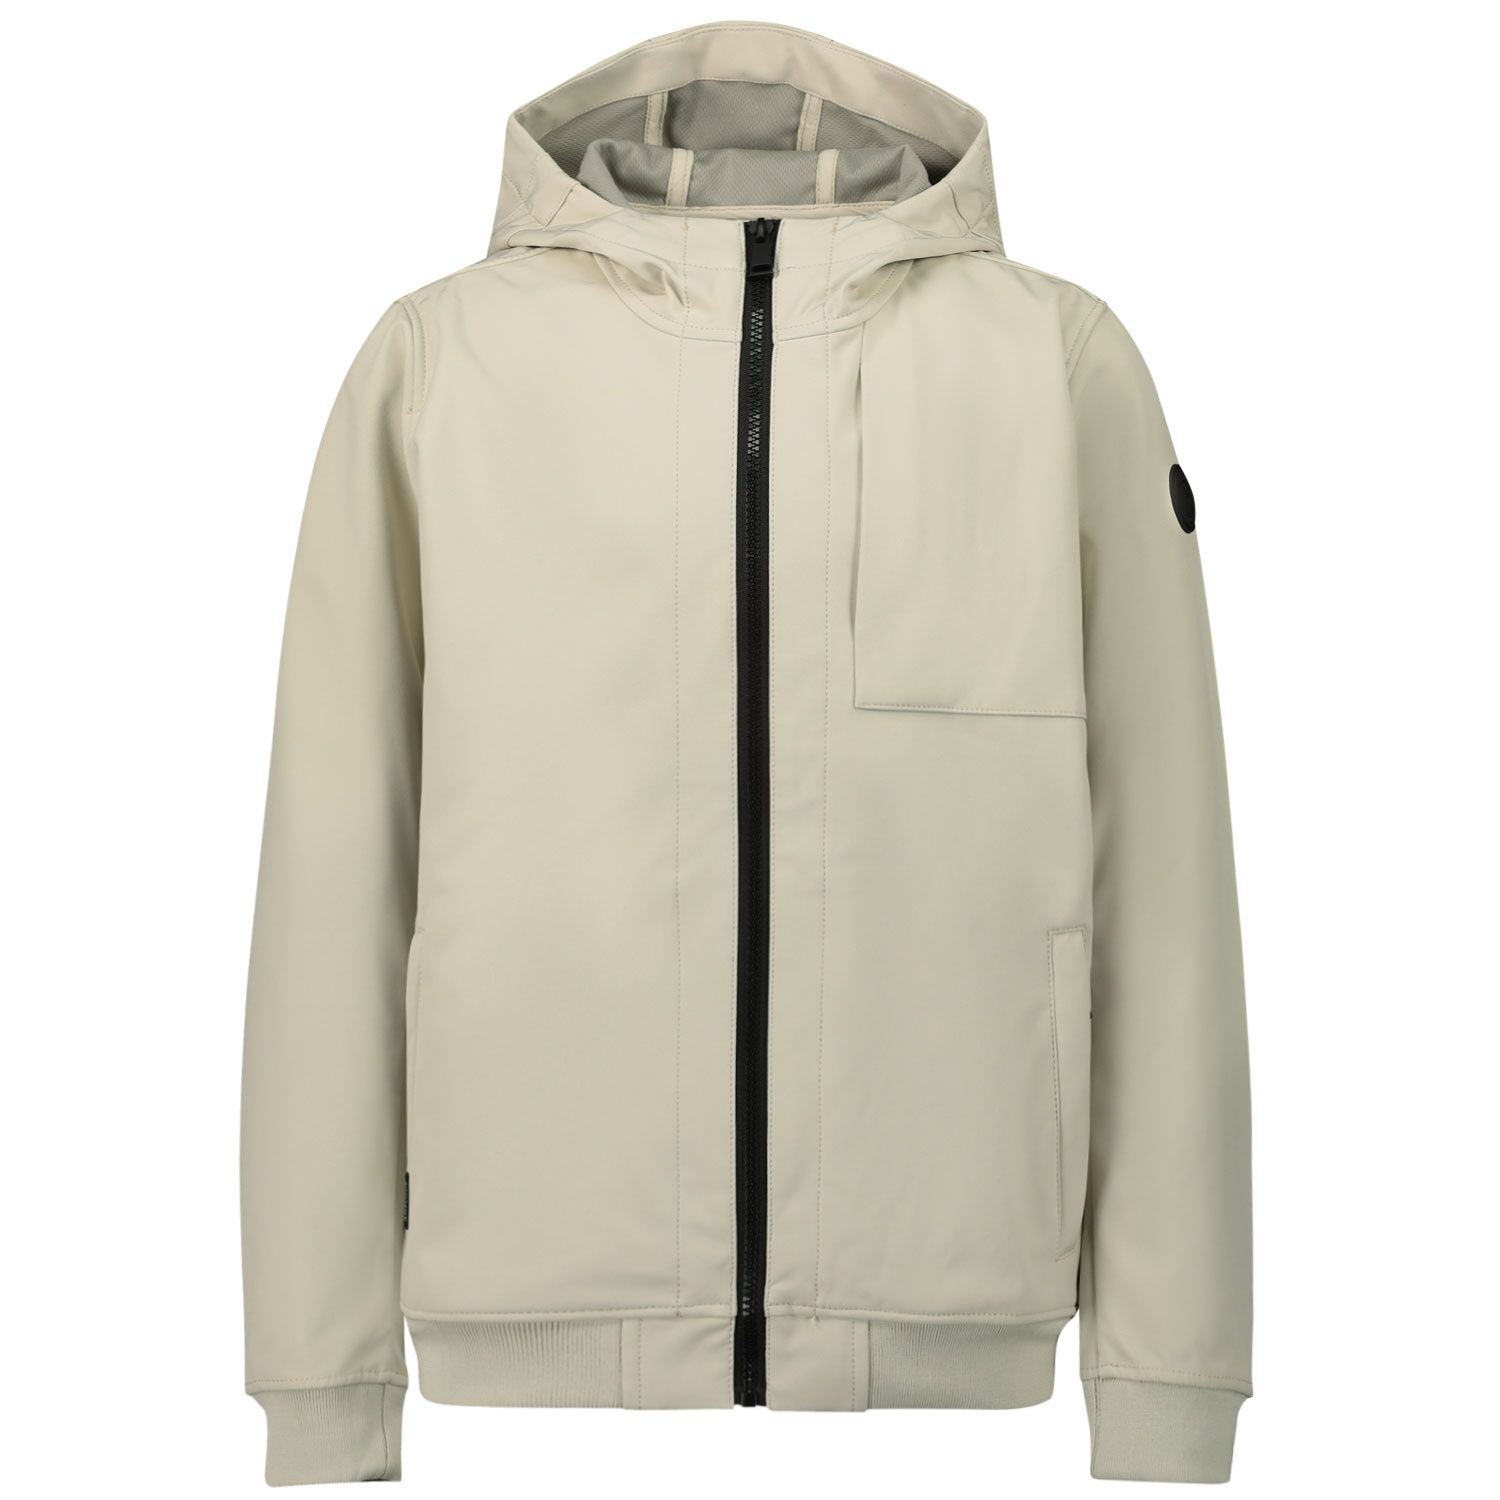 Picture of Airforce HRB0575 kids jacket light beige